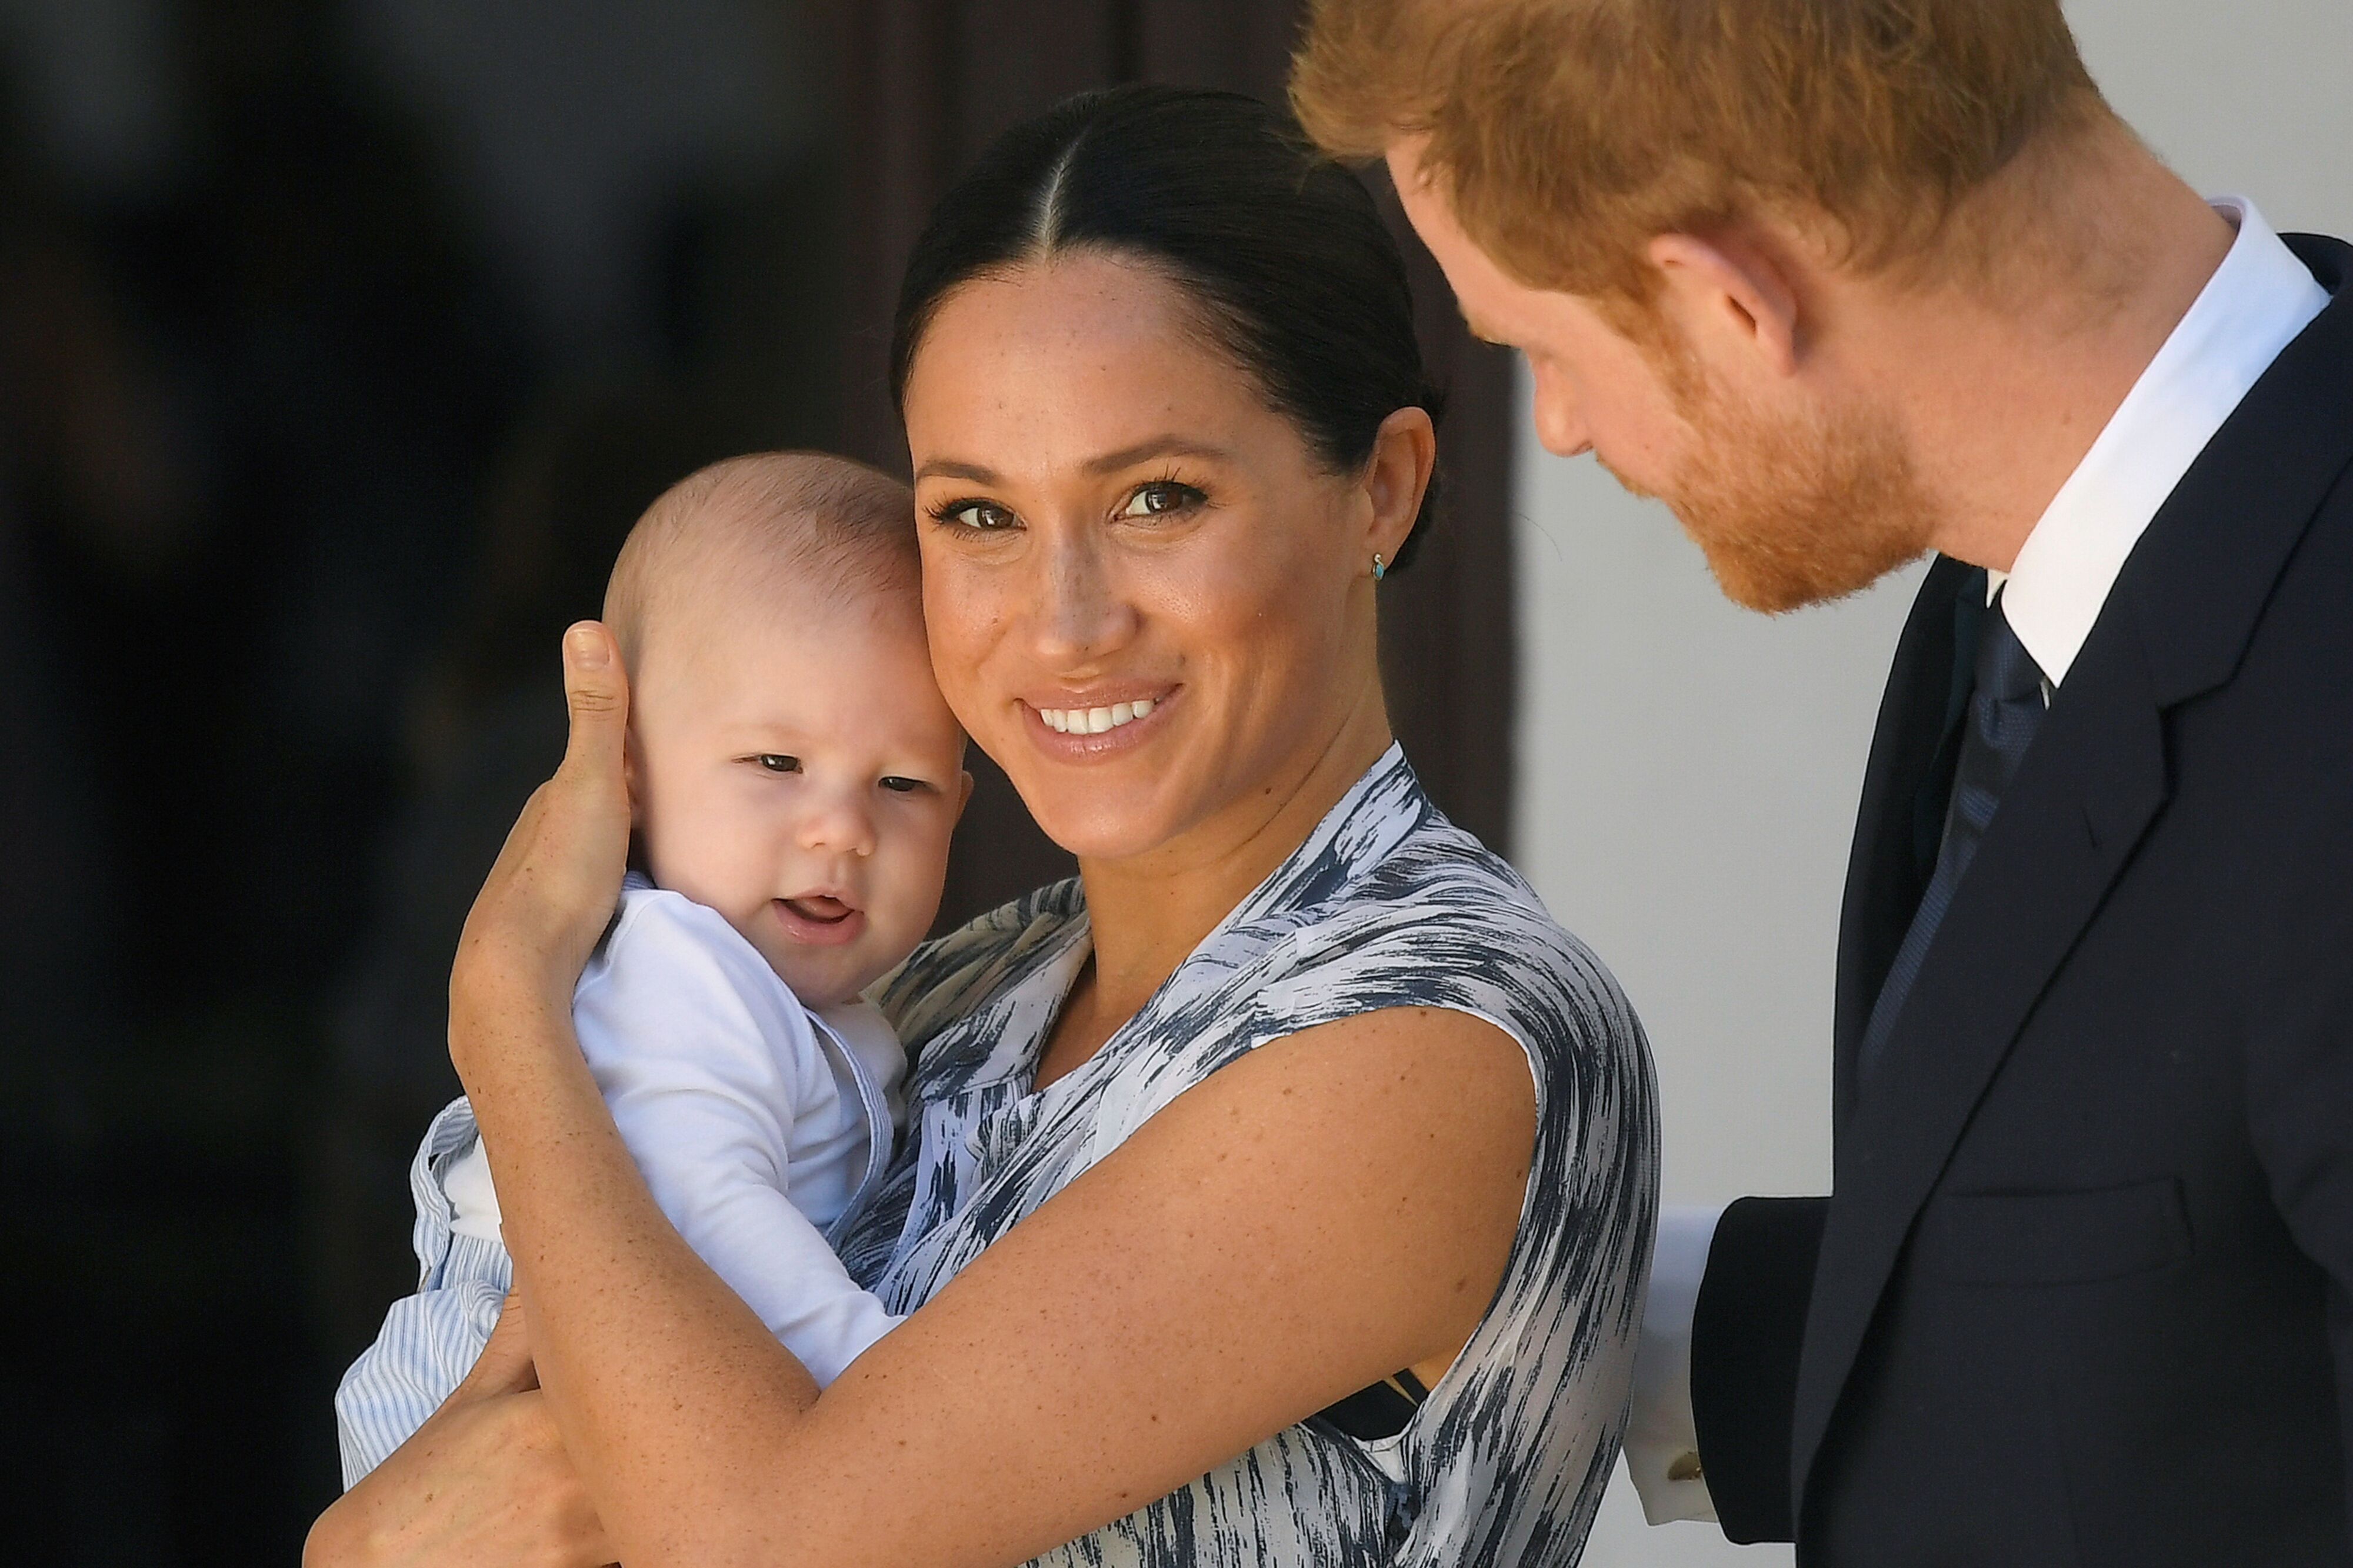 Meghan Markle and Prince Harry and their baby son Archie Mountbatten-Windsor at a meeting with Archbishop Desmond Tutu at the Desmond & Leah Tutu Legacy Foundation during their royal tour of South Africa on September 25, 2019 in Cape Town, South Africa. | Source: Getty Images